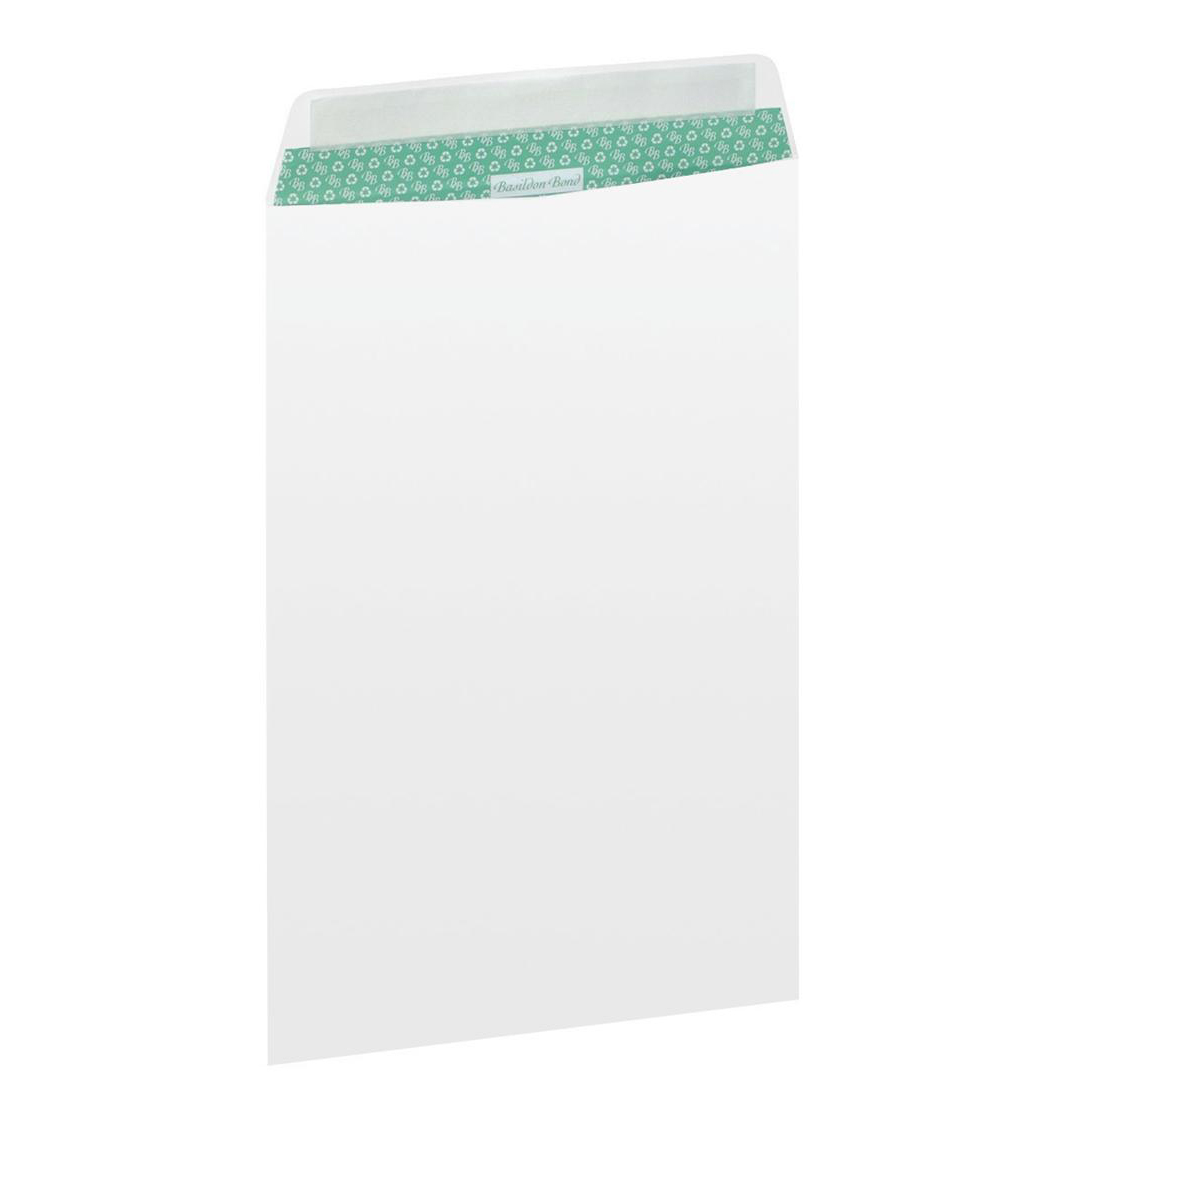 Window envelopes Basildon Bond Envelopes FSC Recycled Pocket Peel & Seal Wdw 120gsm C4 324x229mm Whte Ref B80285 Pack 50